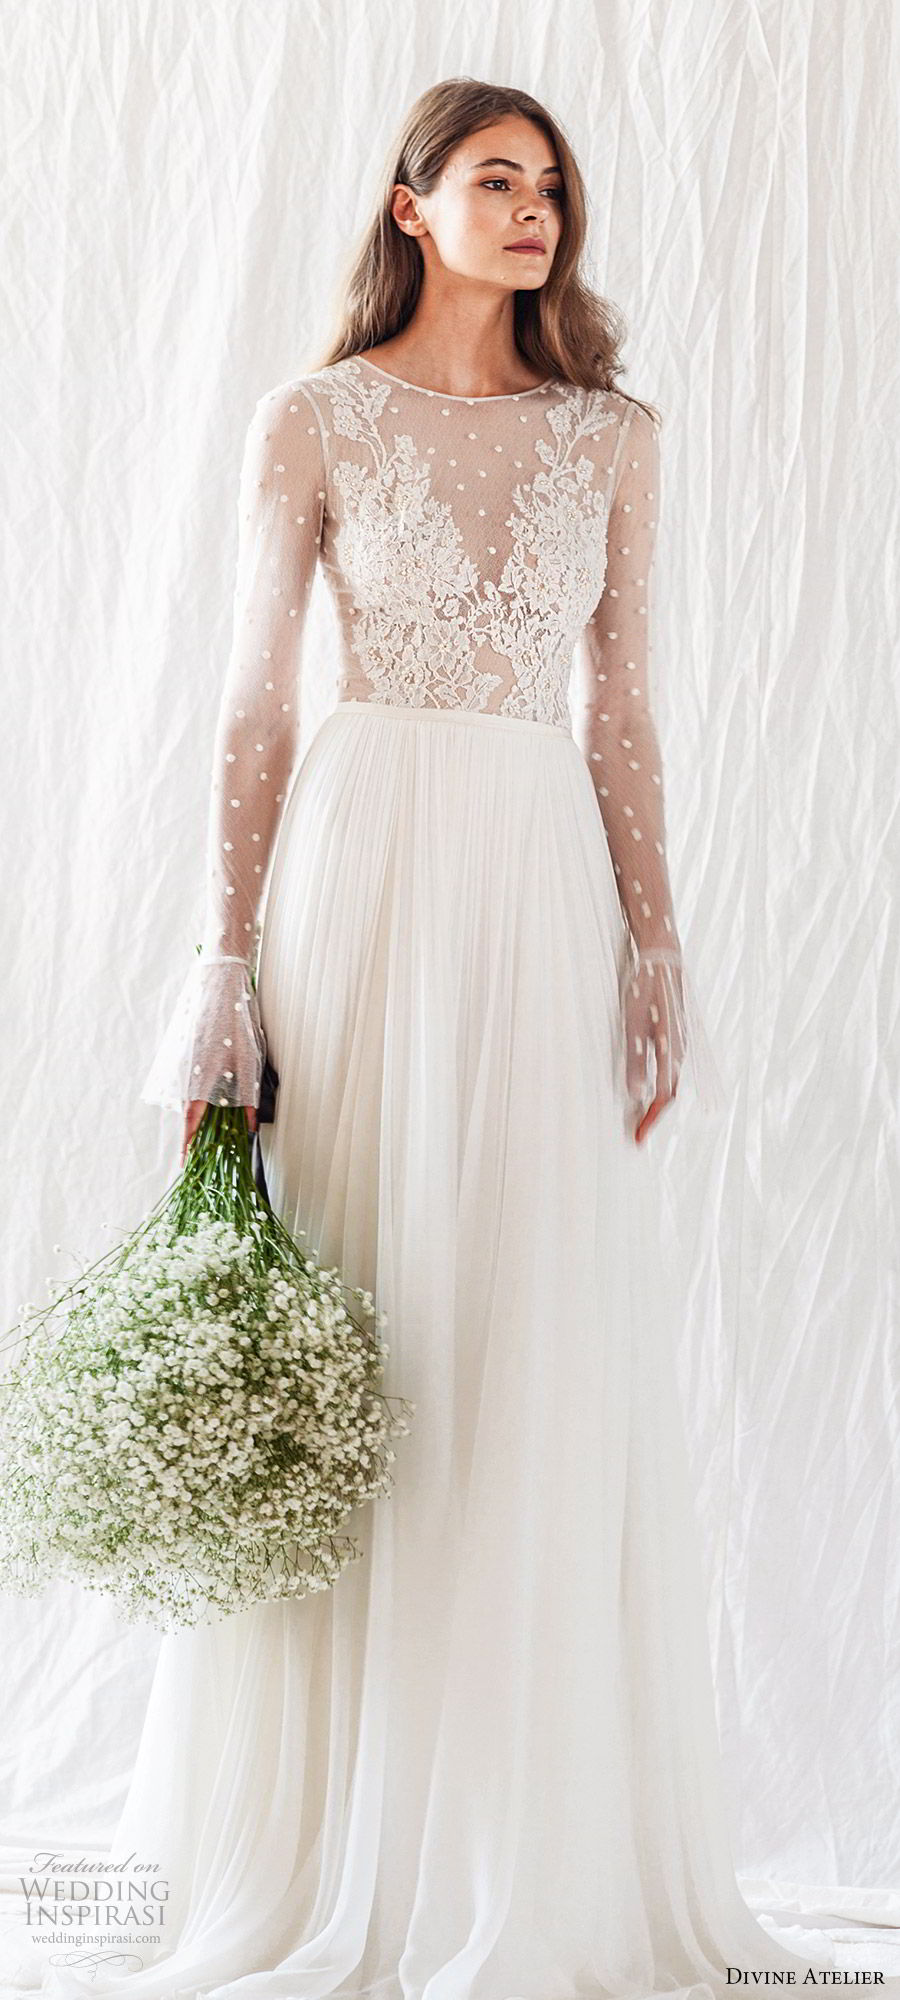 divine atelier 2019 bridal illusion long bell sleeves jewel neckline sheer lace bodice soft a line wedding dress (11) sheer back chapel train romantic boho chic mv